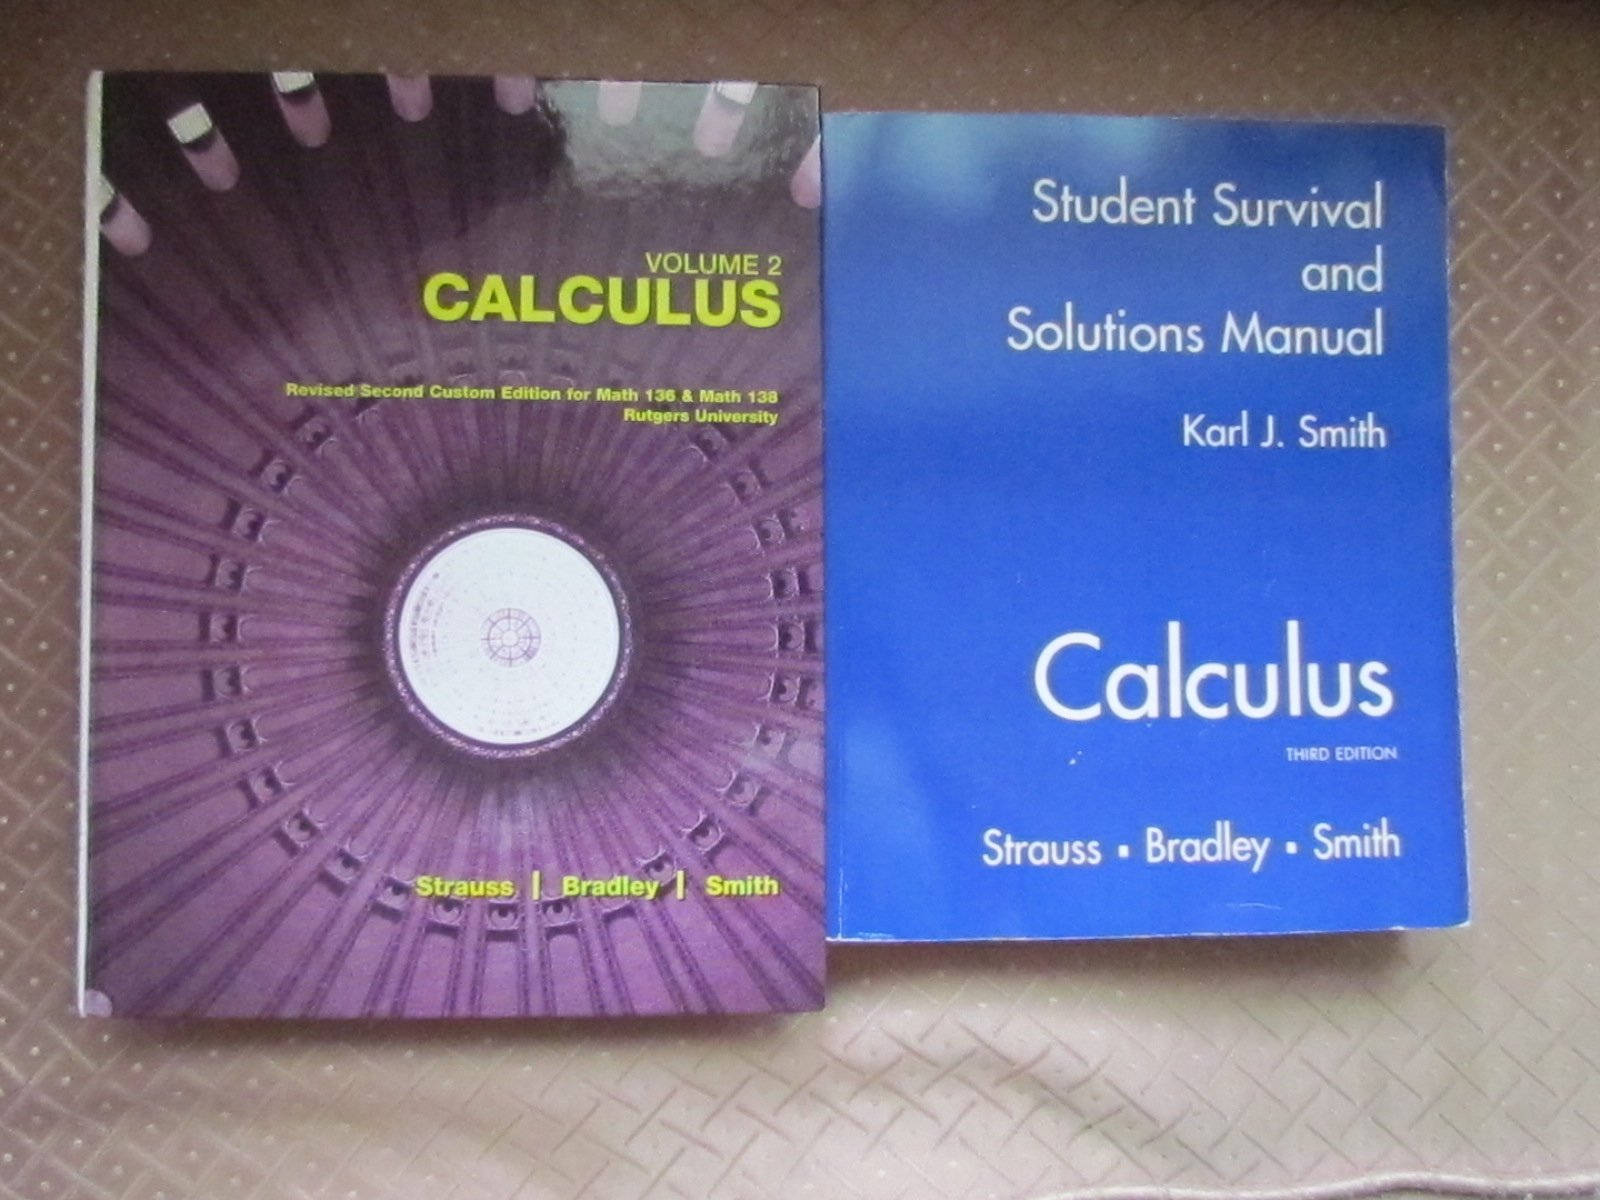 Calculus Revised Second Custom Edition for Math 136 & Math 138 Rutgers  University VOLUME 2 + Solutions Manual (2): Strauss Bradley Smith:  9780536518200: ...